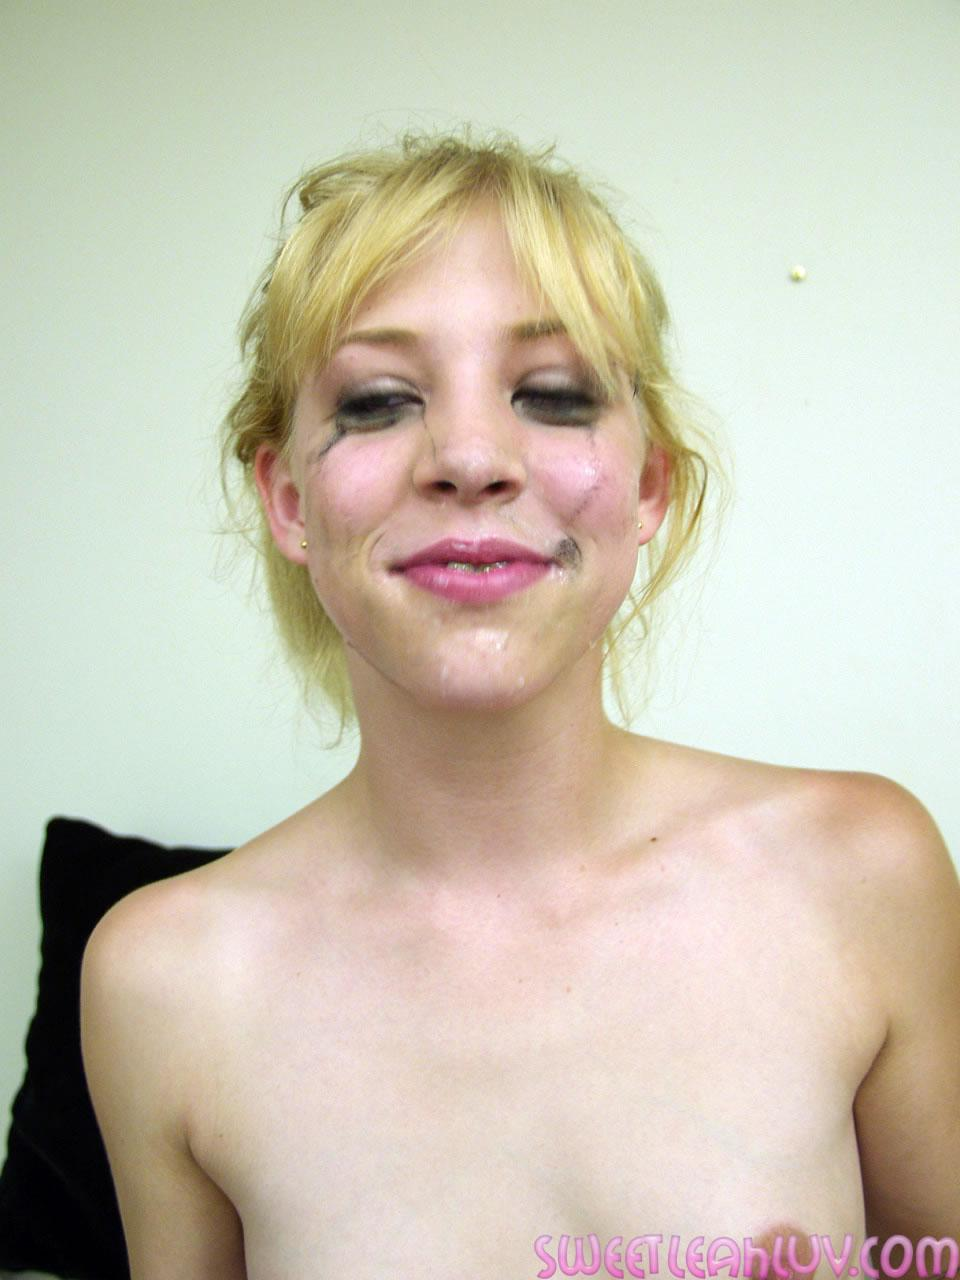 With you blond milf tube version